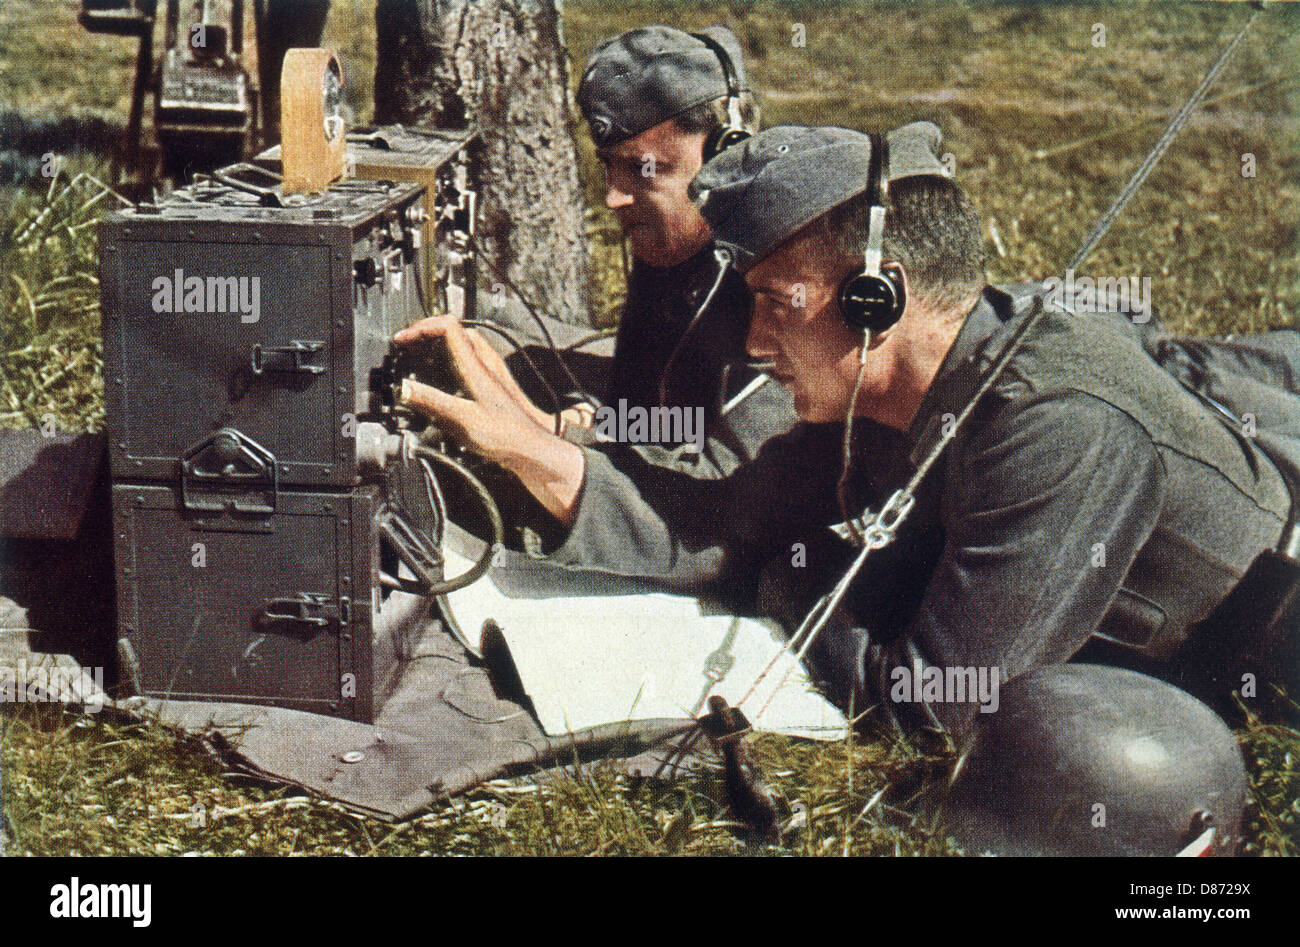 Image result for ww2 listening for radio transmissions from the enemy